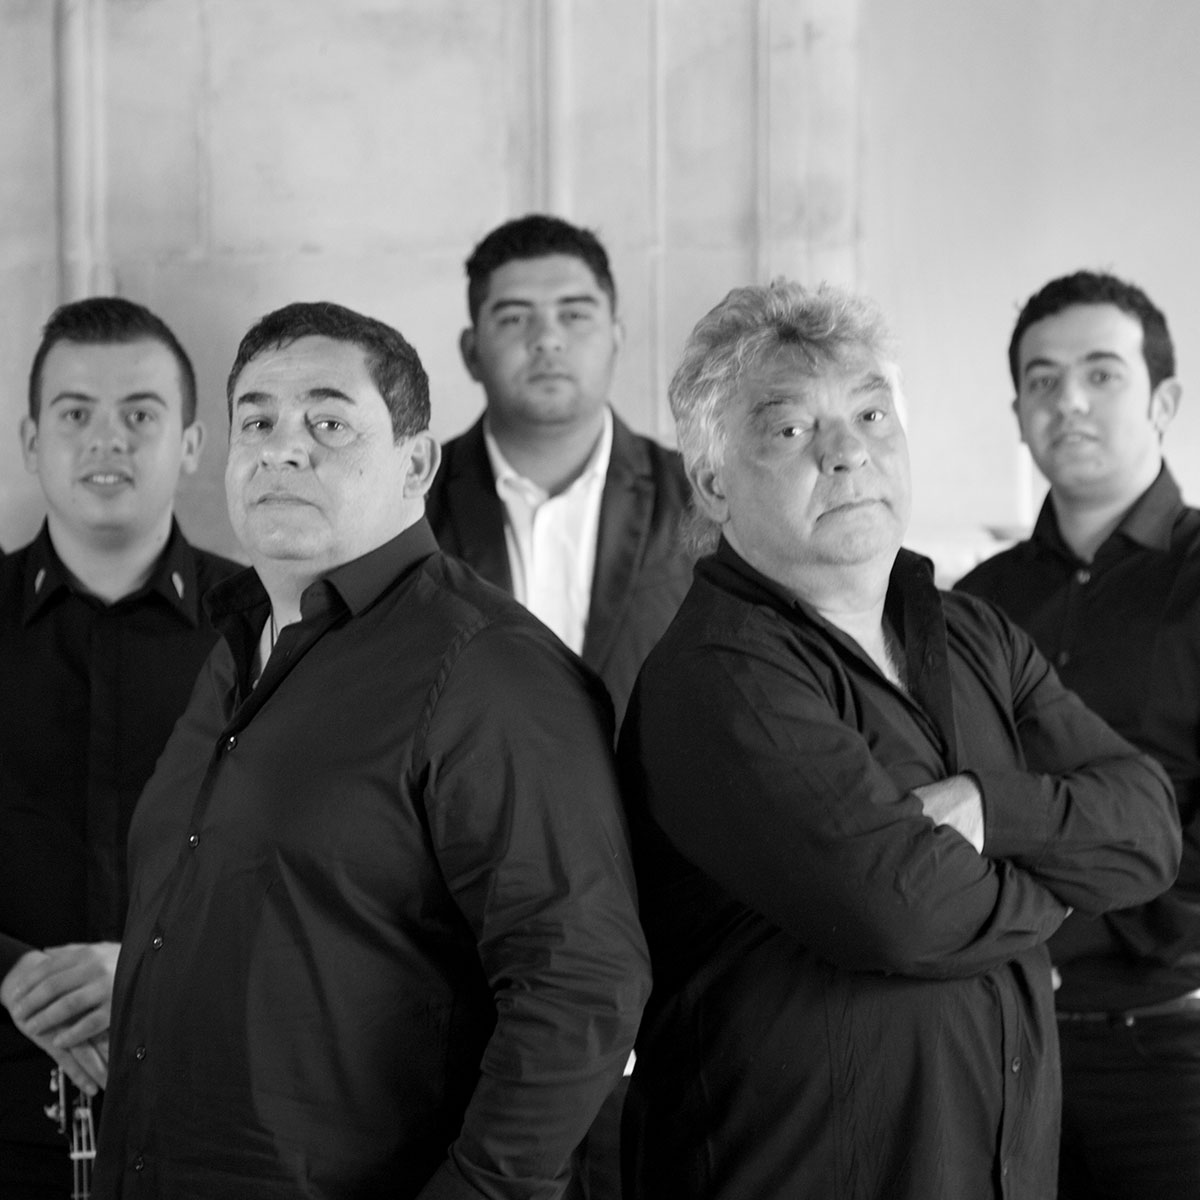 THE GIPSY KINGS – Live in Concert